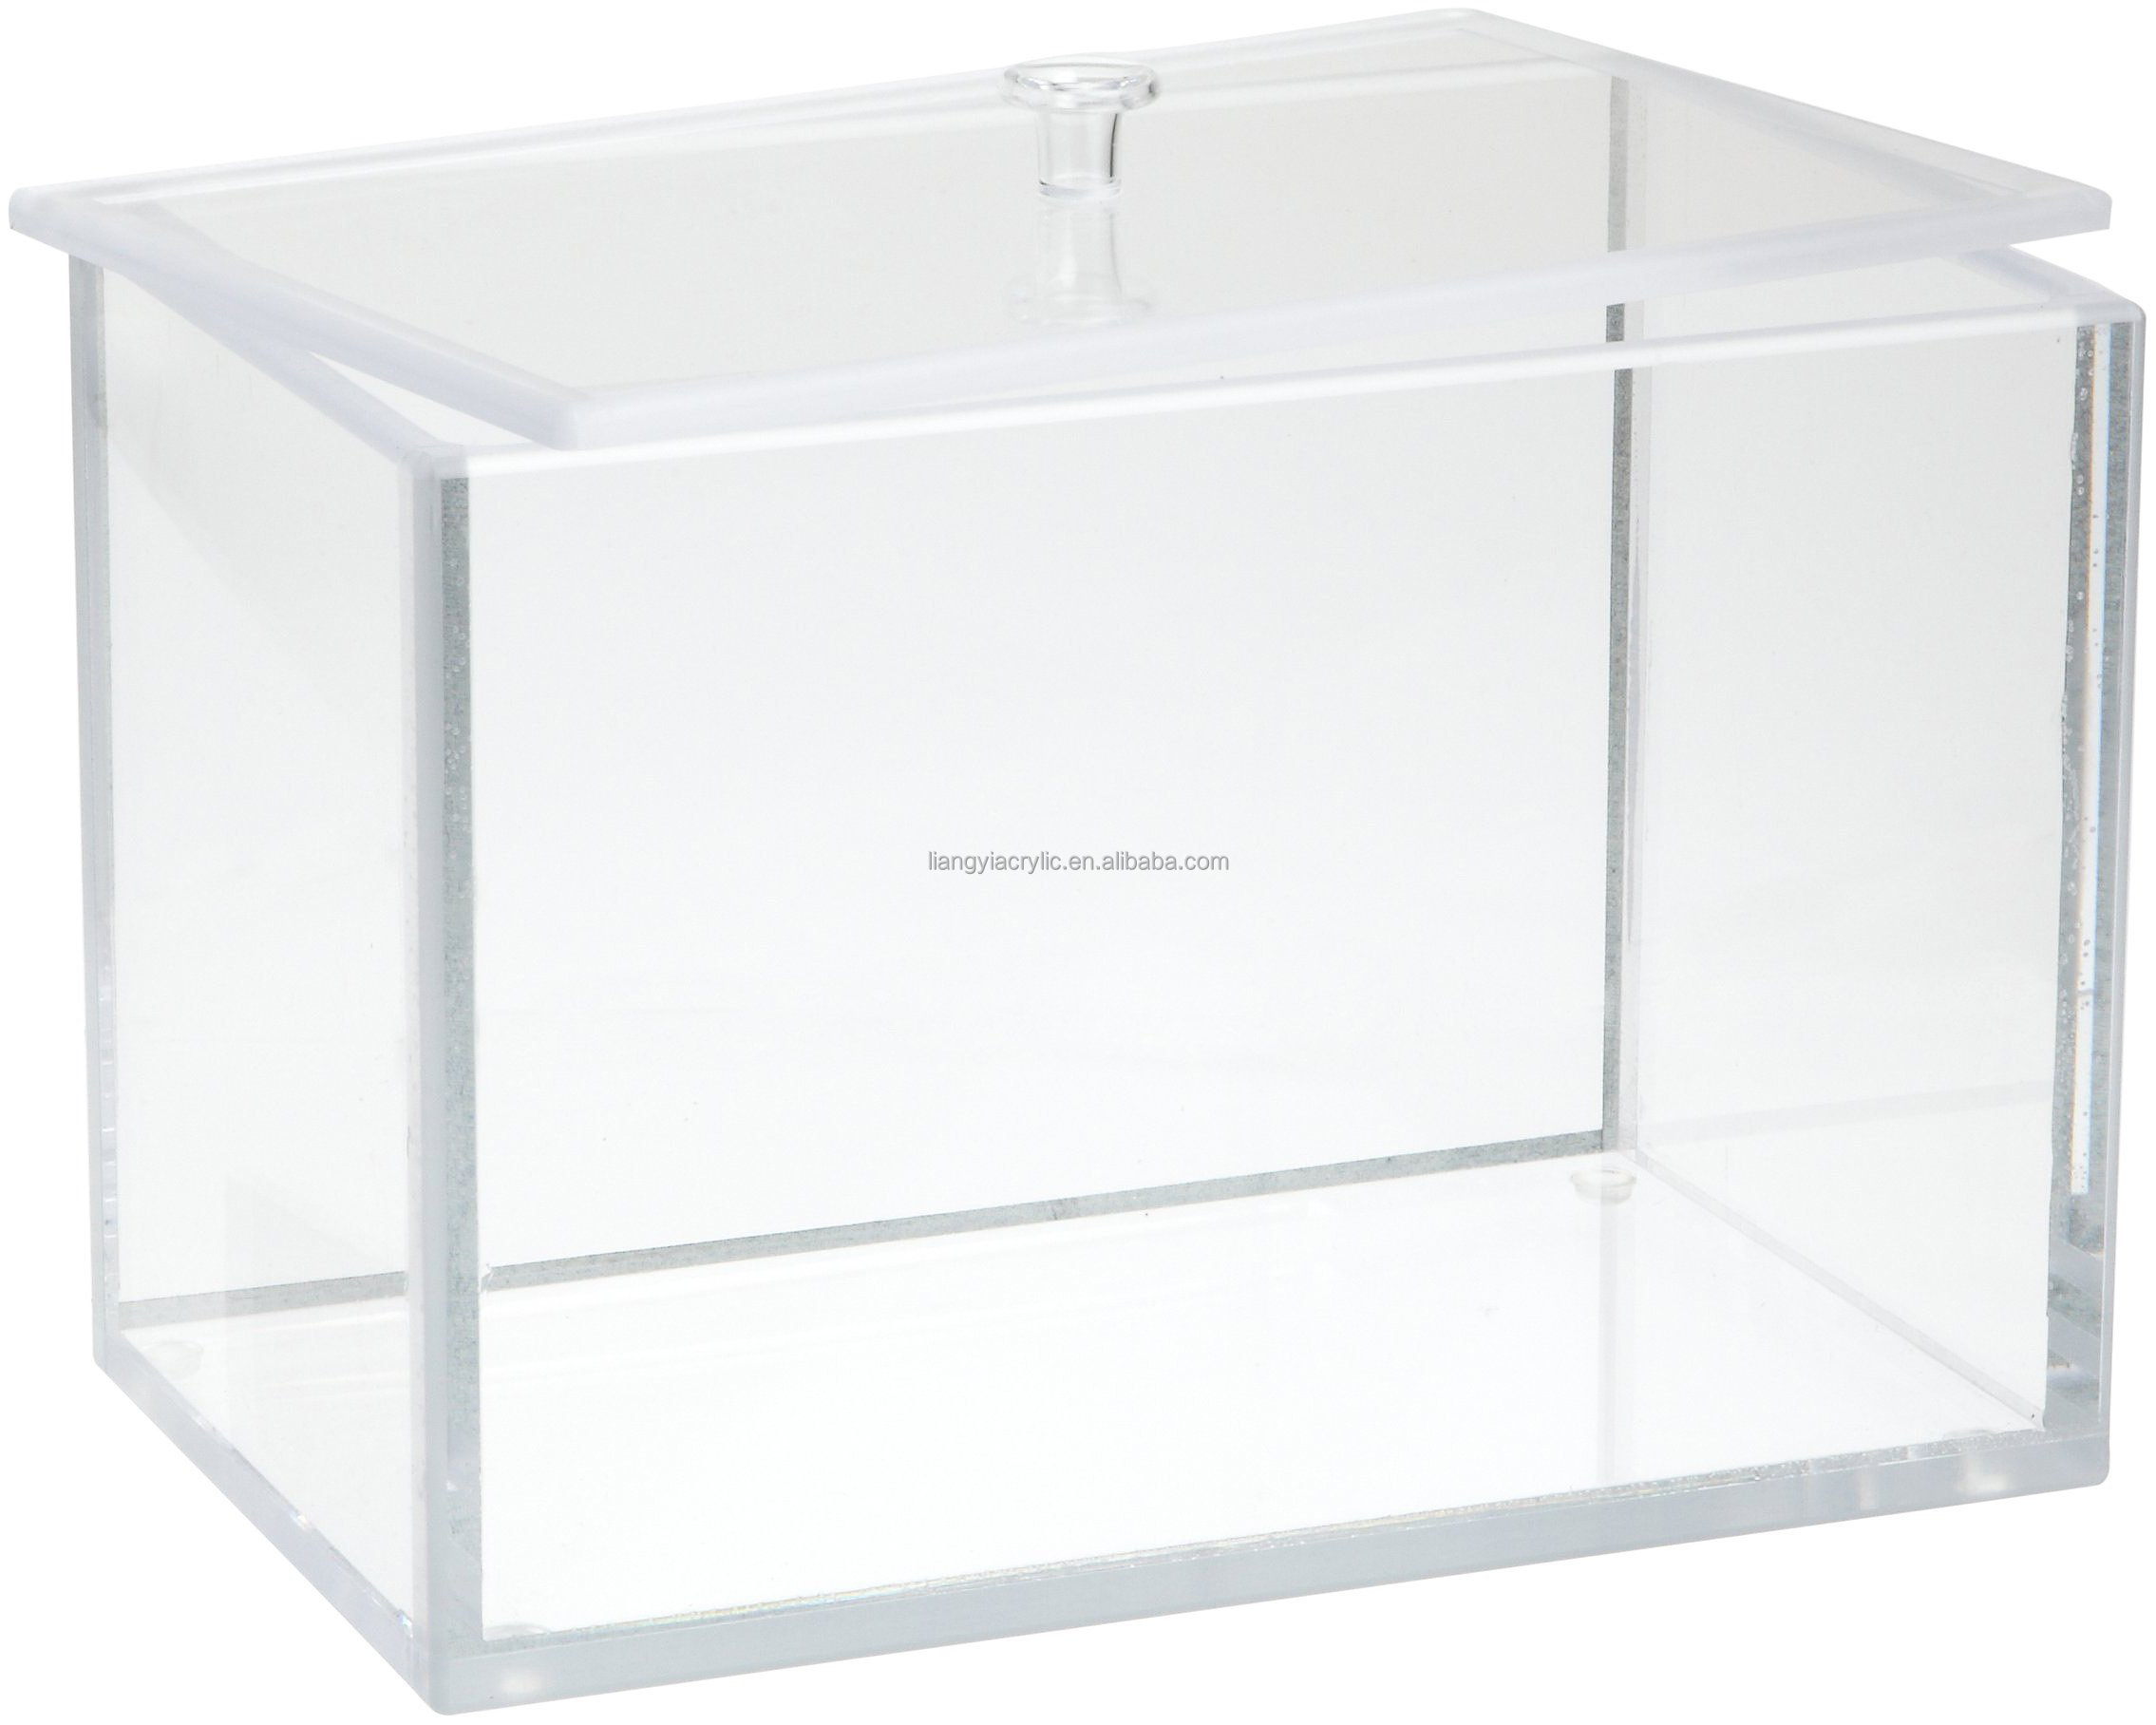 Clear Acrylic Storage Box With Lid Factory - Buy Acrylic ...